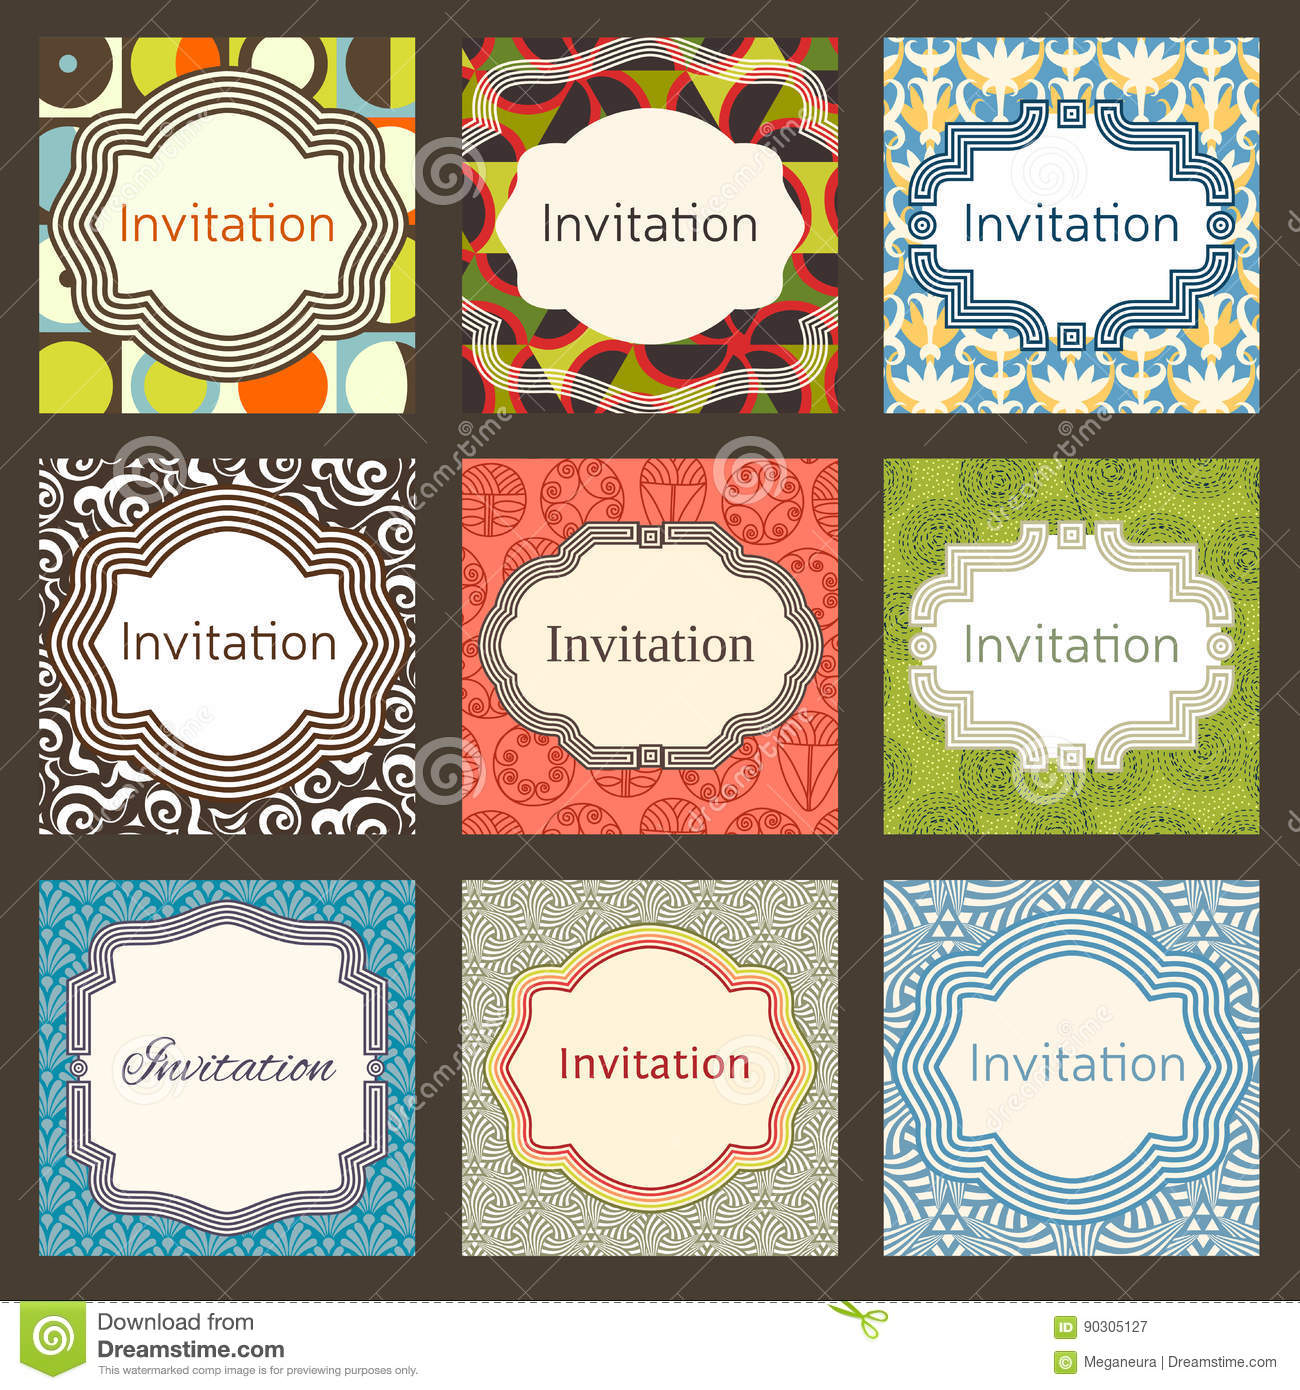 Invitation Card Design Template Set Editable Layout For Birthday Party Wedding Baby Shower Valentines Day Trendy Geometric Memphis Style